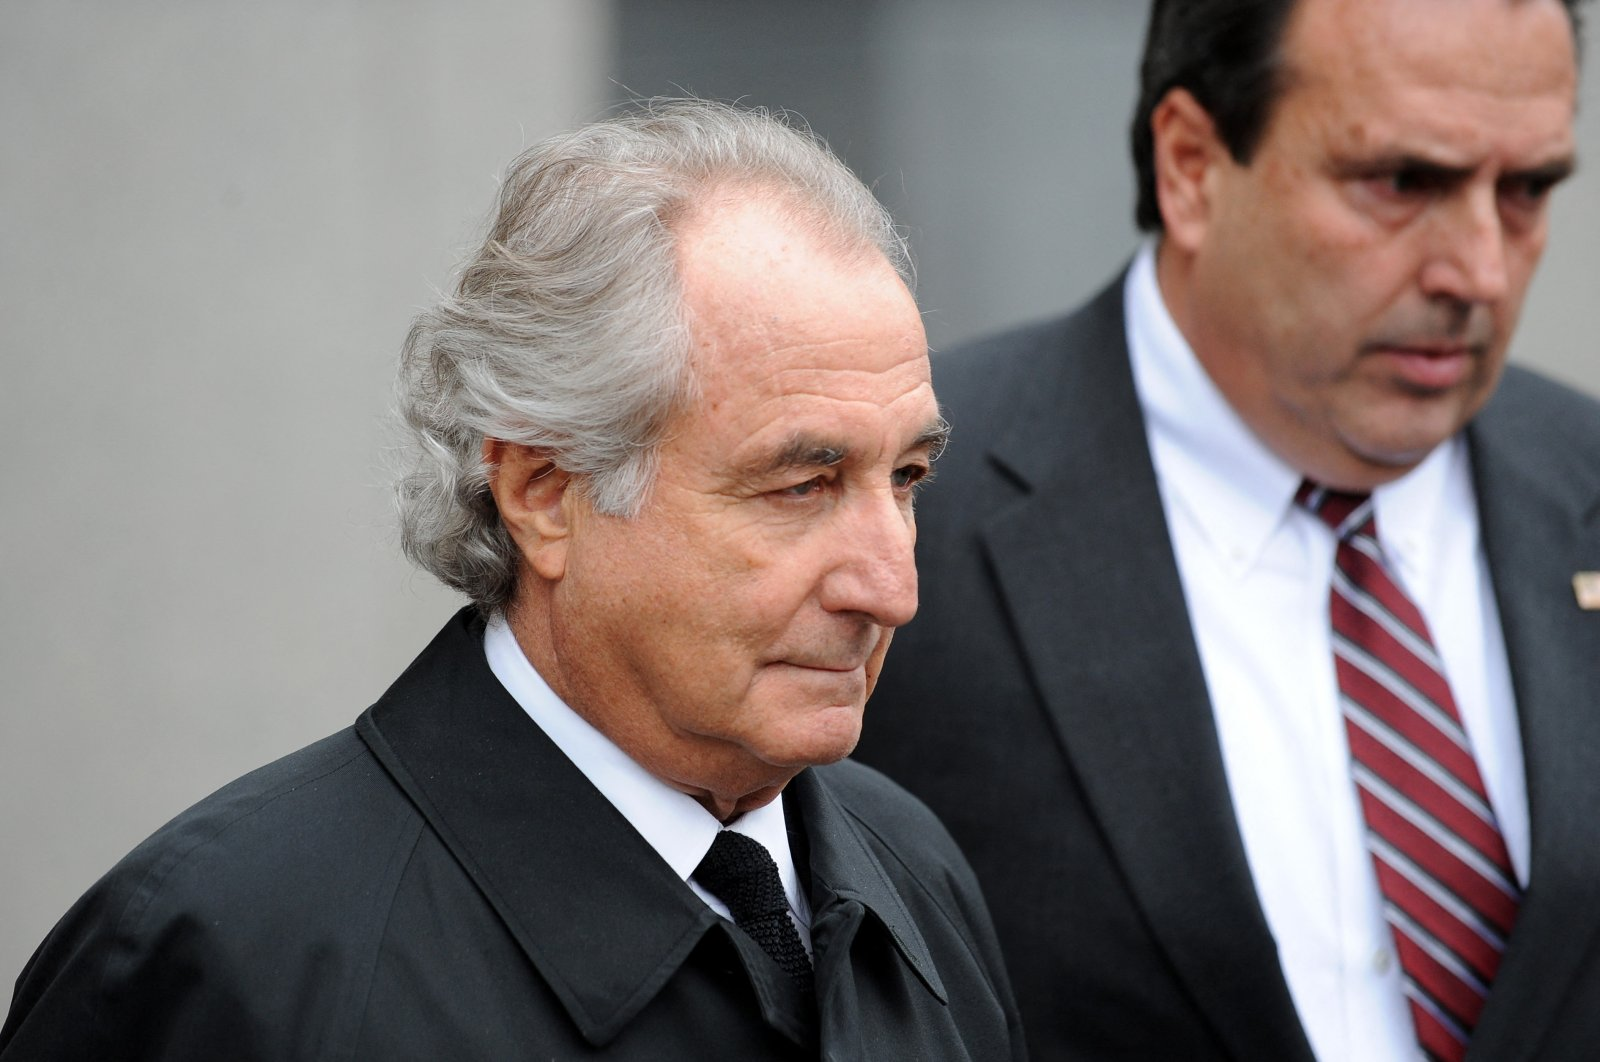 Disgraced Wall Street financier Bernard Madoff leaves U.S. Federal Court in after a hearing, New York, U.S., on March 10, 2009. (AFP Photo)